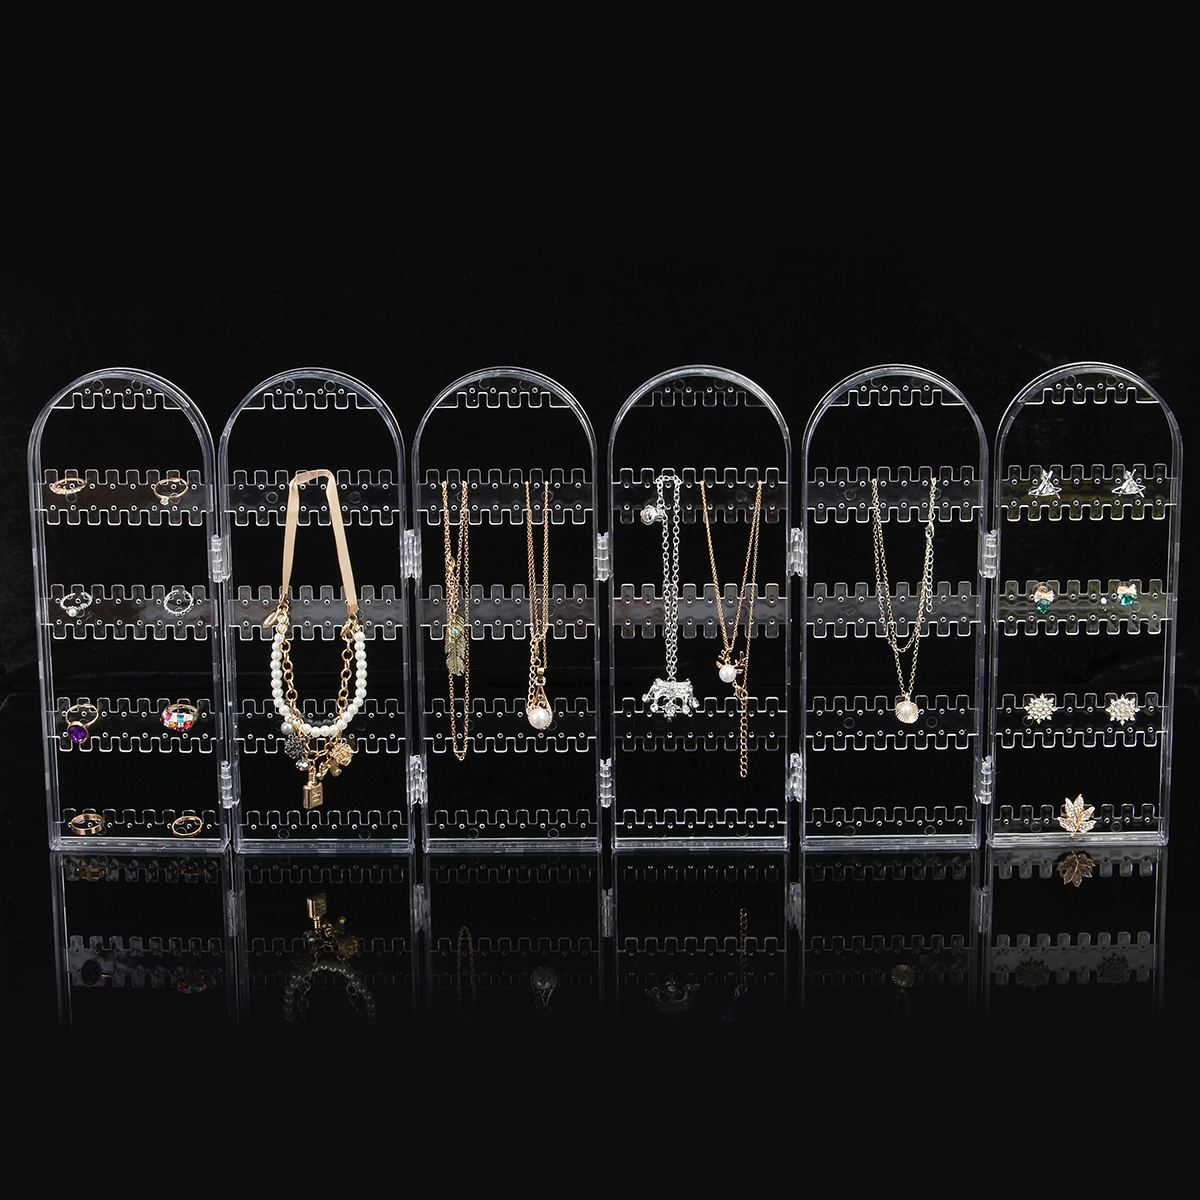 360 Holes Clear Display Rack Stand Organizer Holder for Earrings Studs Necklace Jewelry